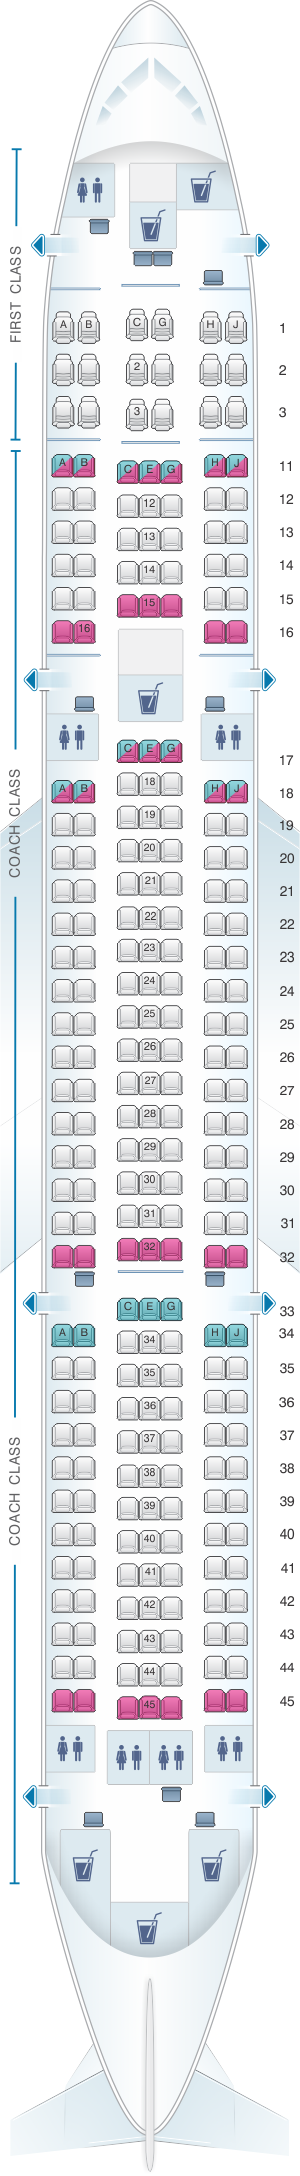 Seat map for Hawaiian Airlines Boeing B767 300 ER